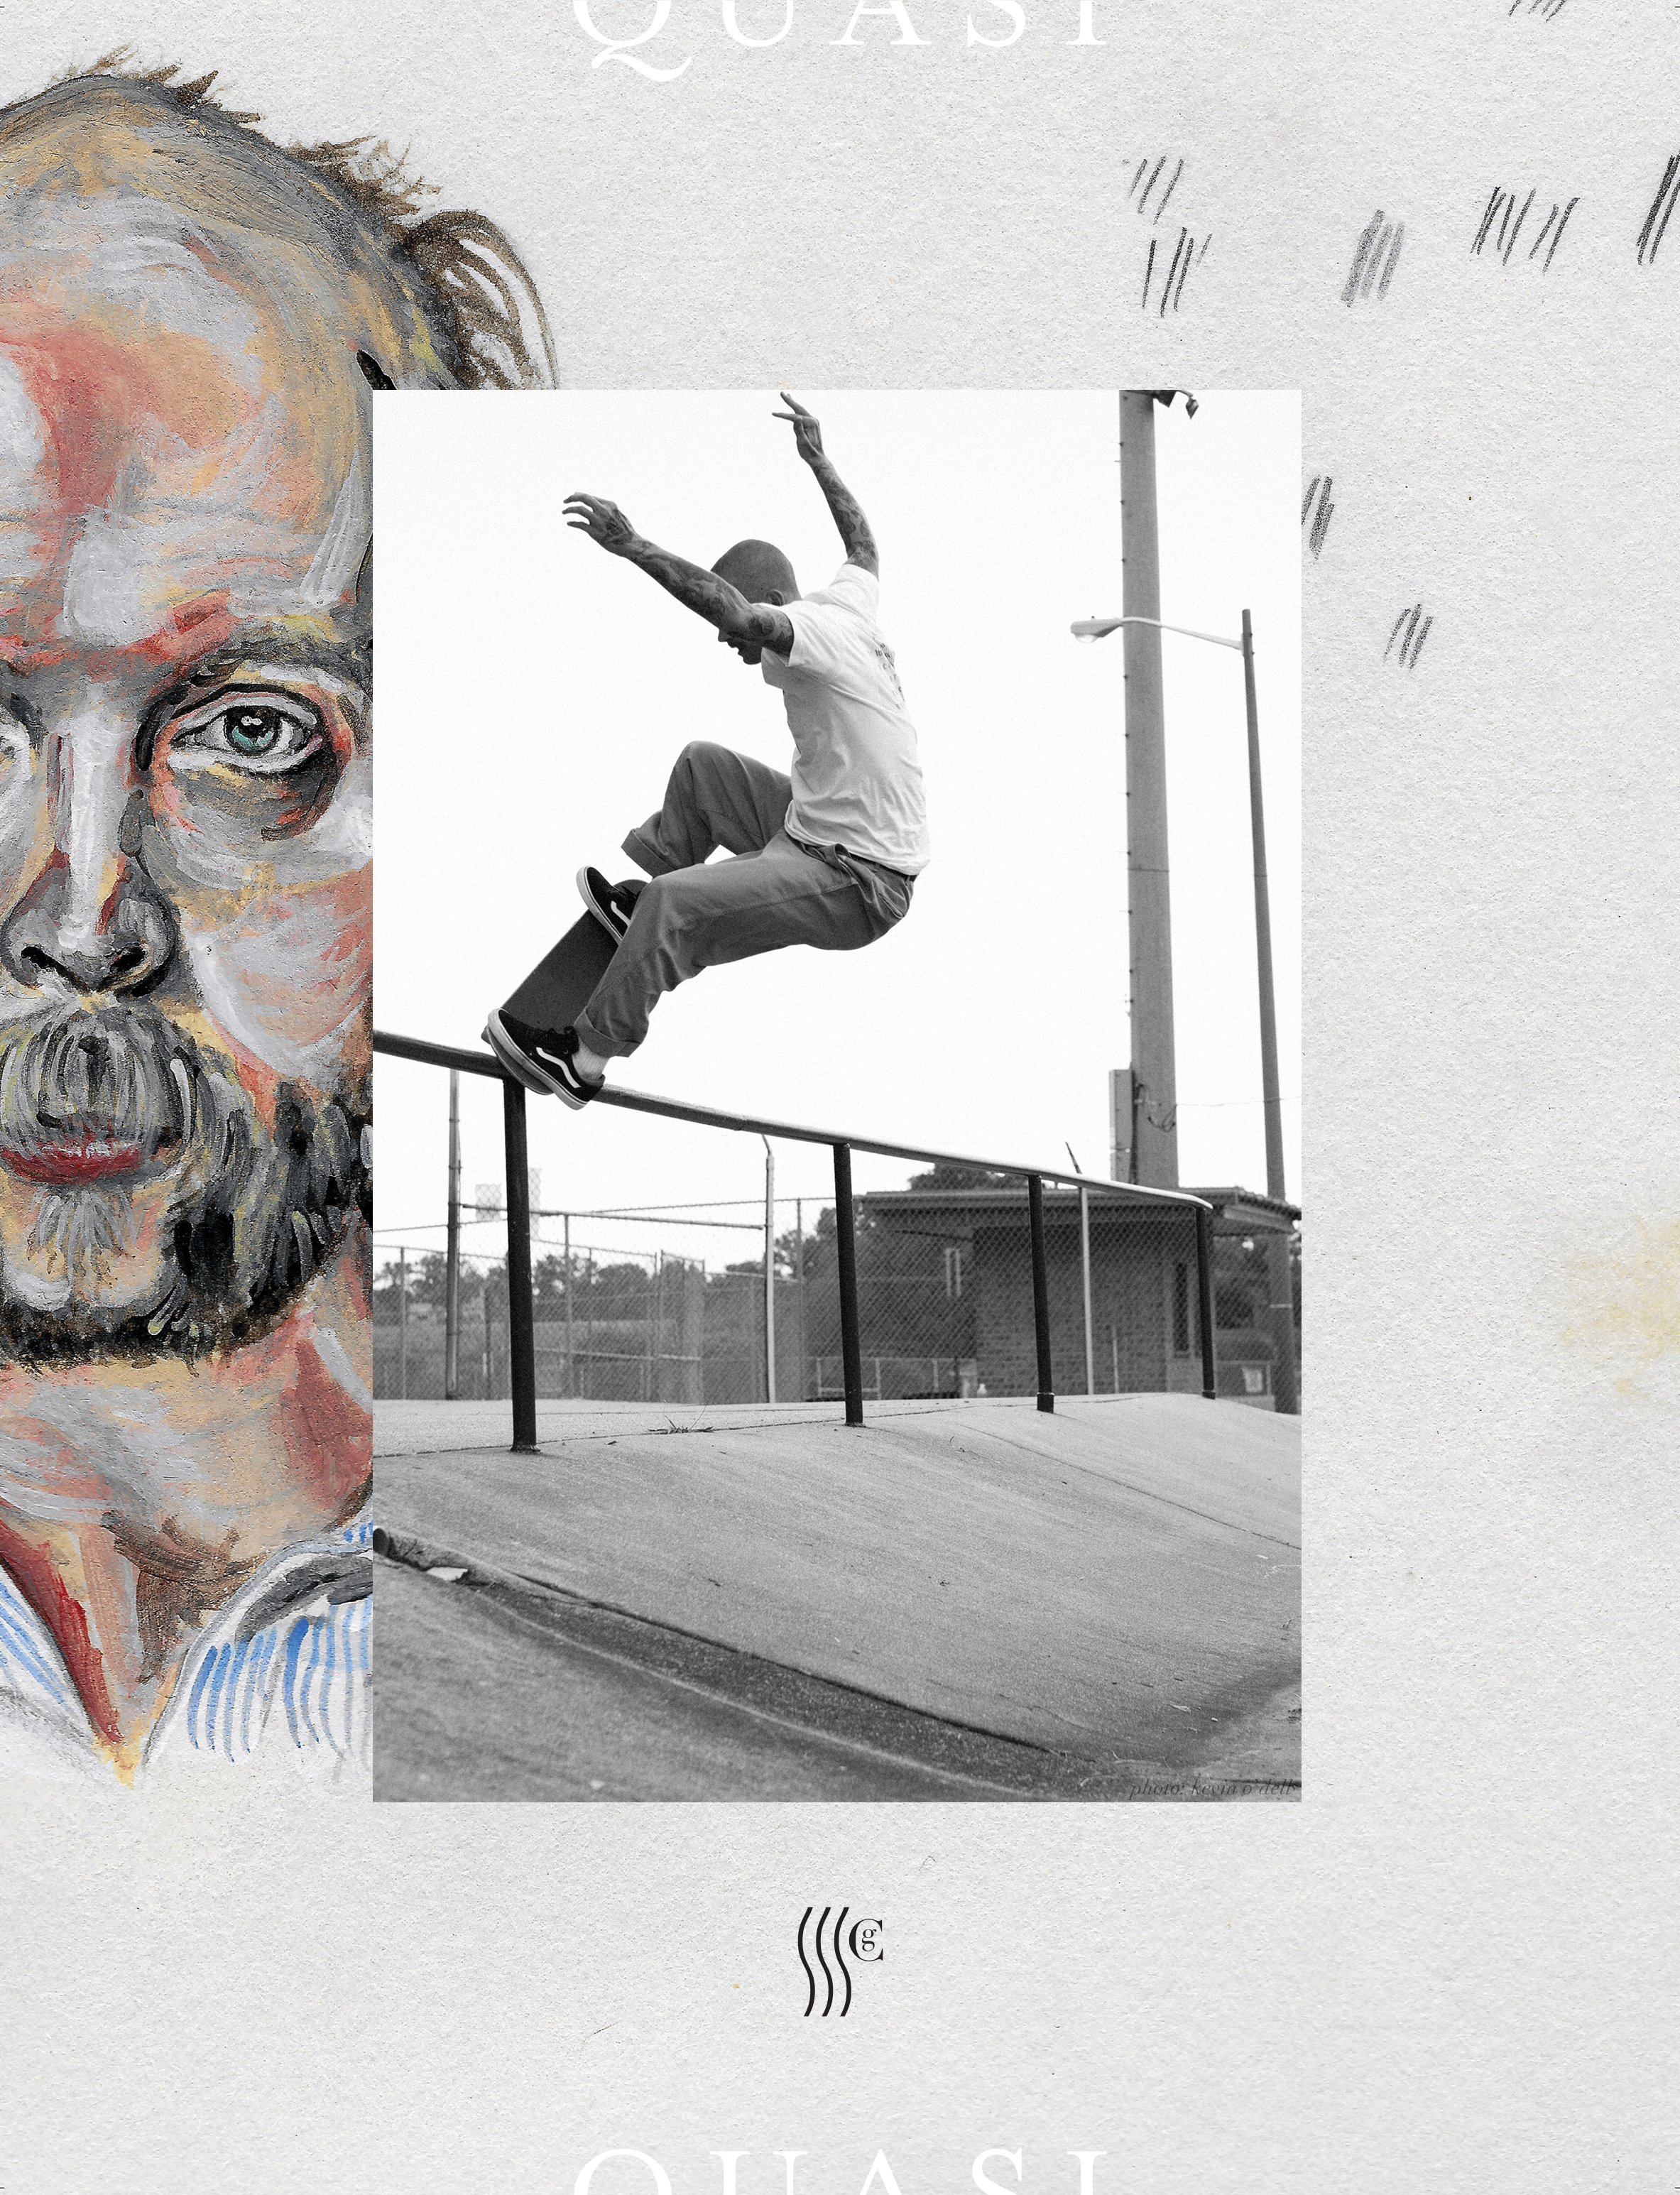 Gilbert Crockett, nosegrind, Will Oldham Quasi Skateboards advert.